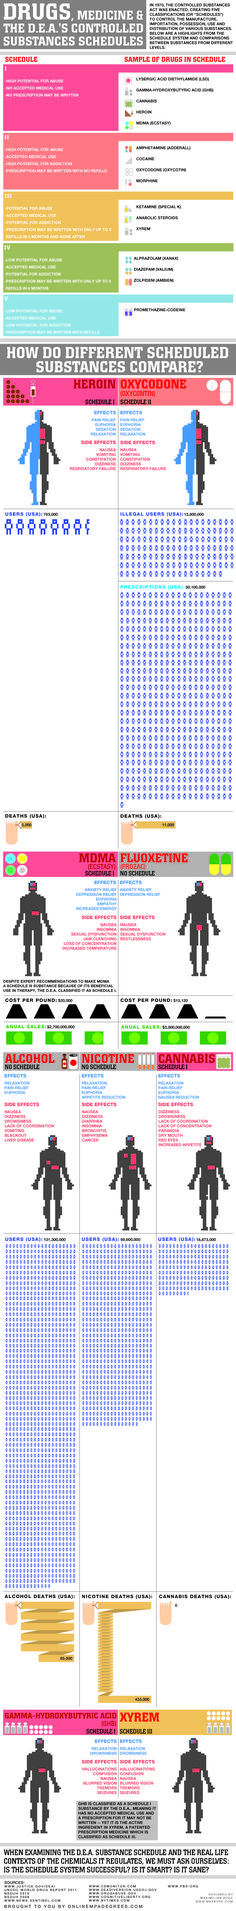 Drugs, Medicine and the D.E.A.'s Controlled Substance Schedules #Infographic